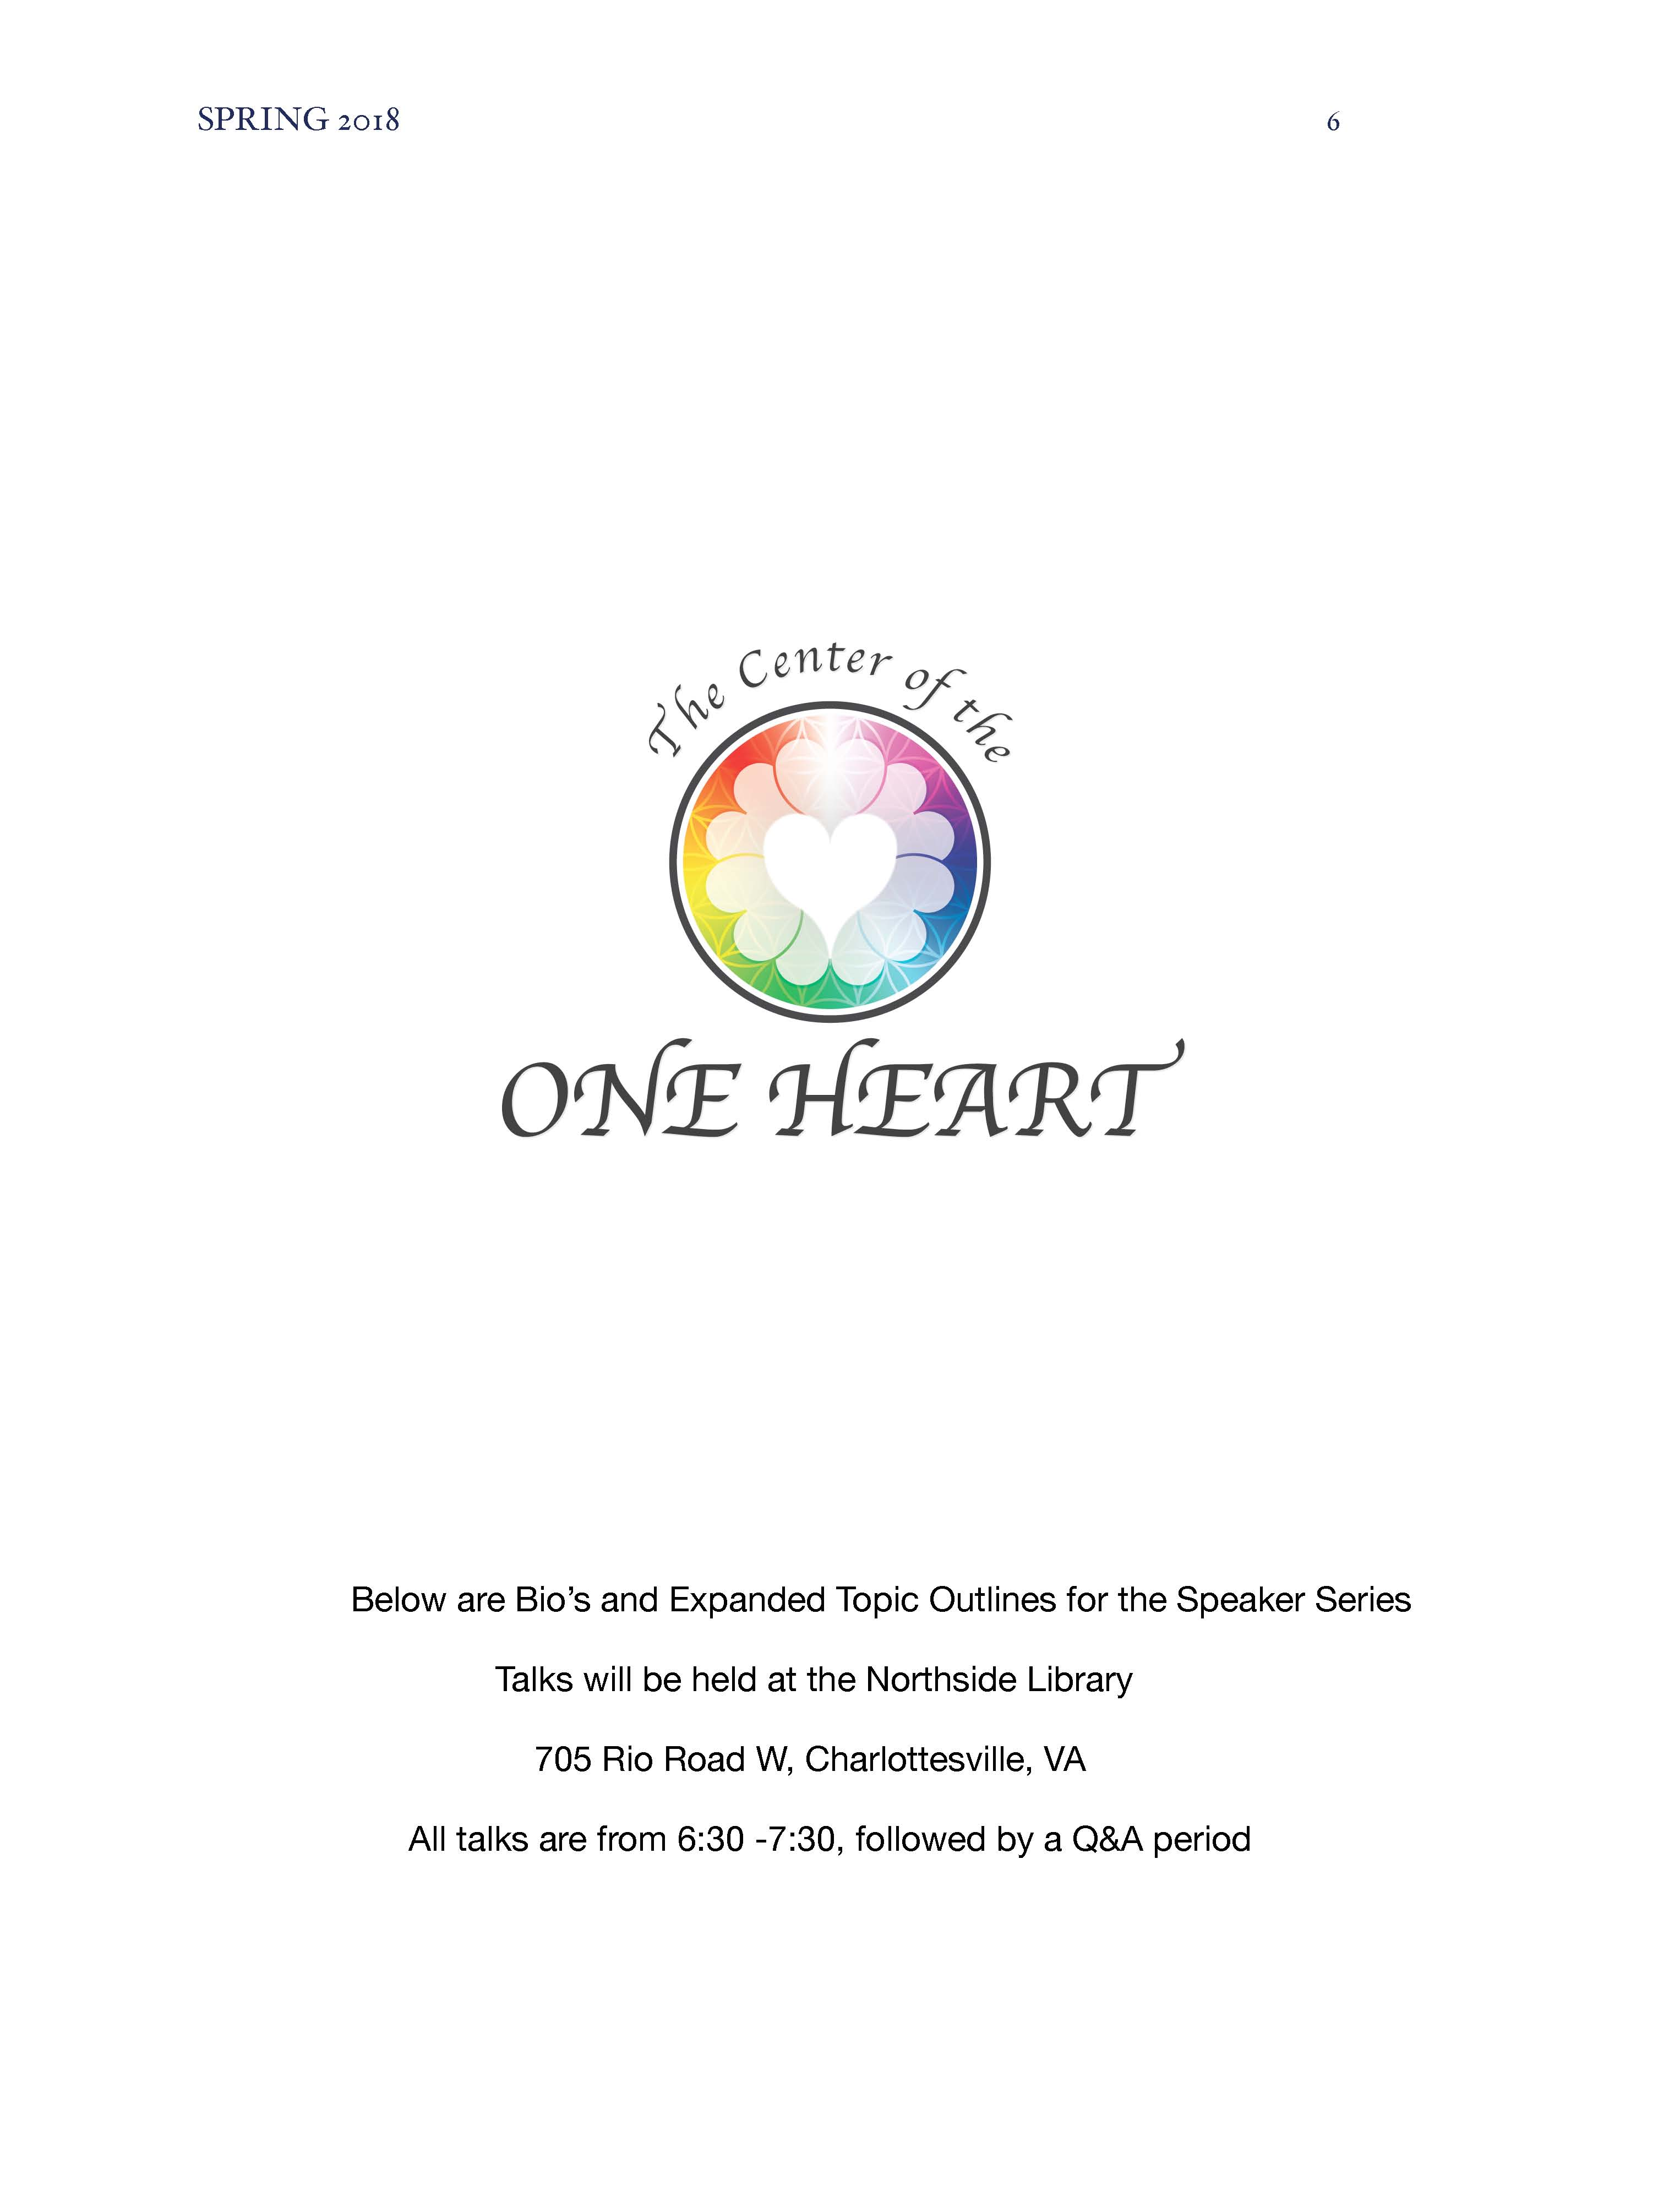 Spring 2018 Newsletter   The Center of the One Heart